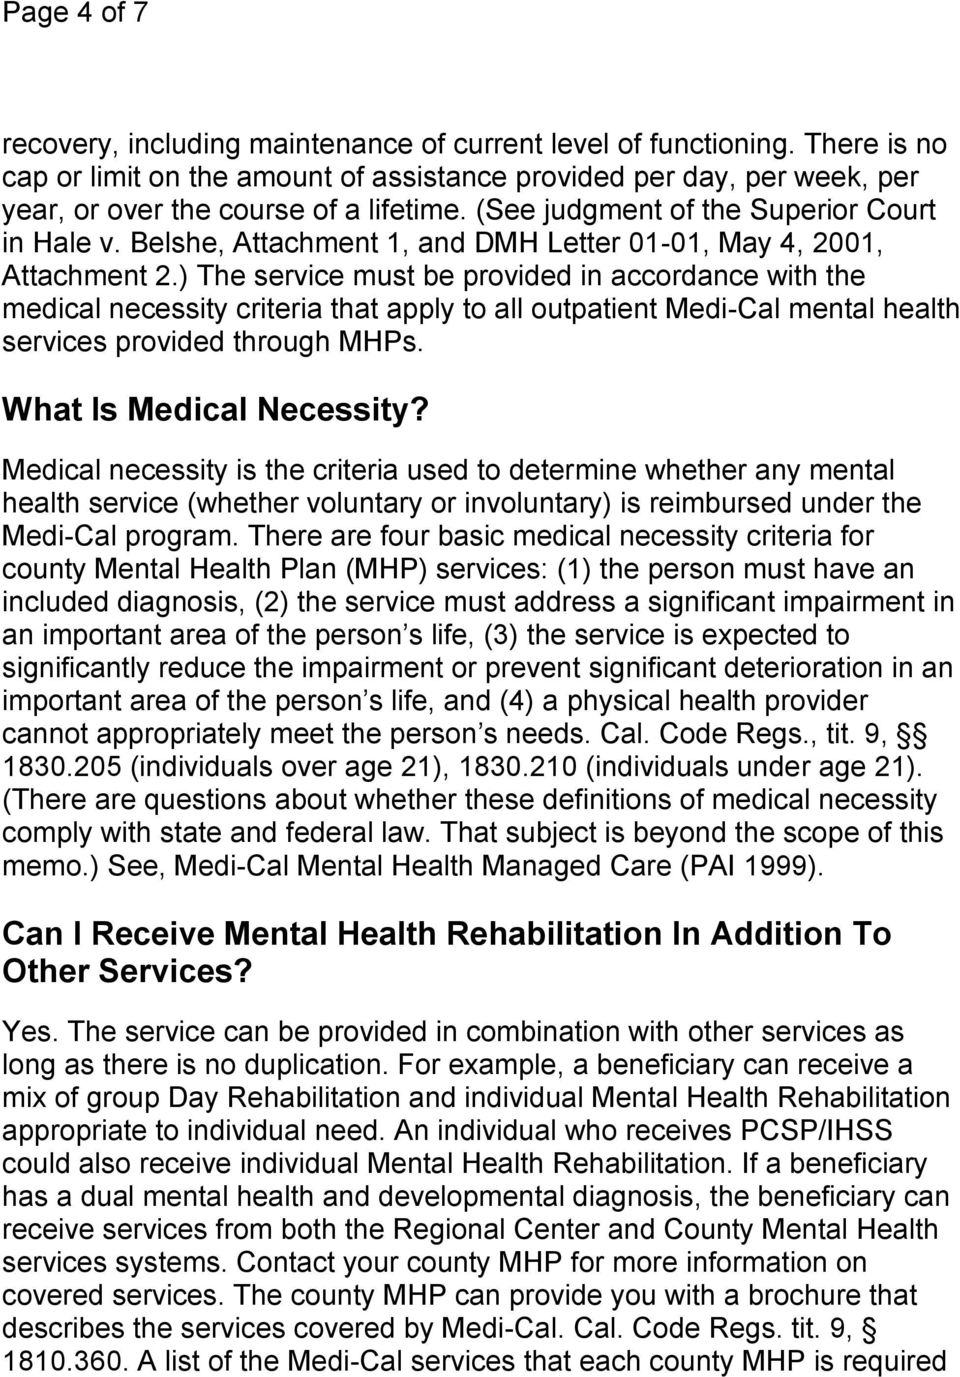 Belshe, Attachment 1, and DMH Letter 01-01, May 4, 2001, Attachment 2.